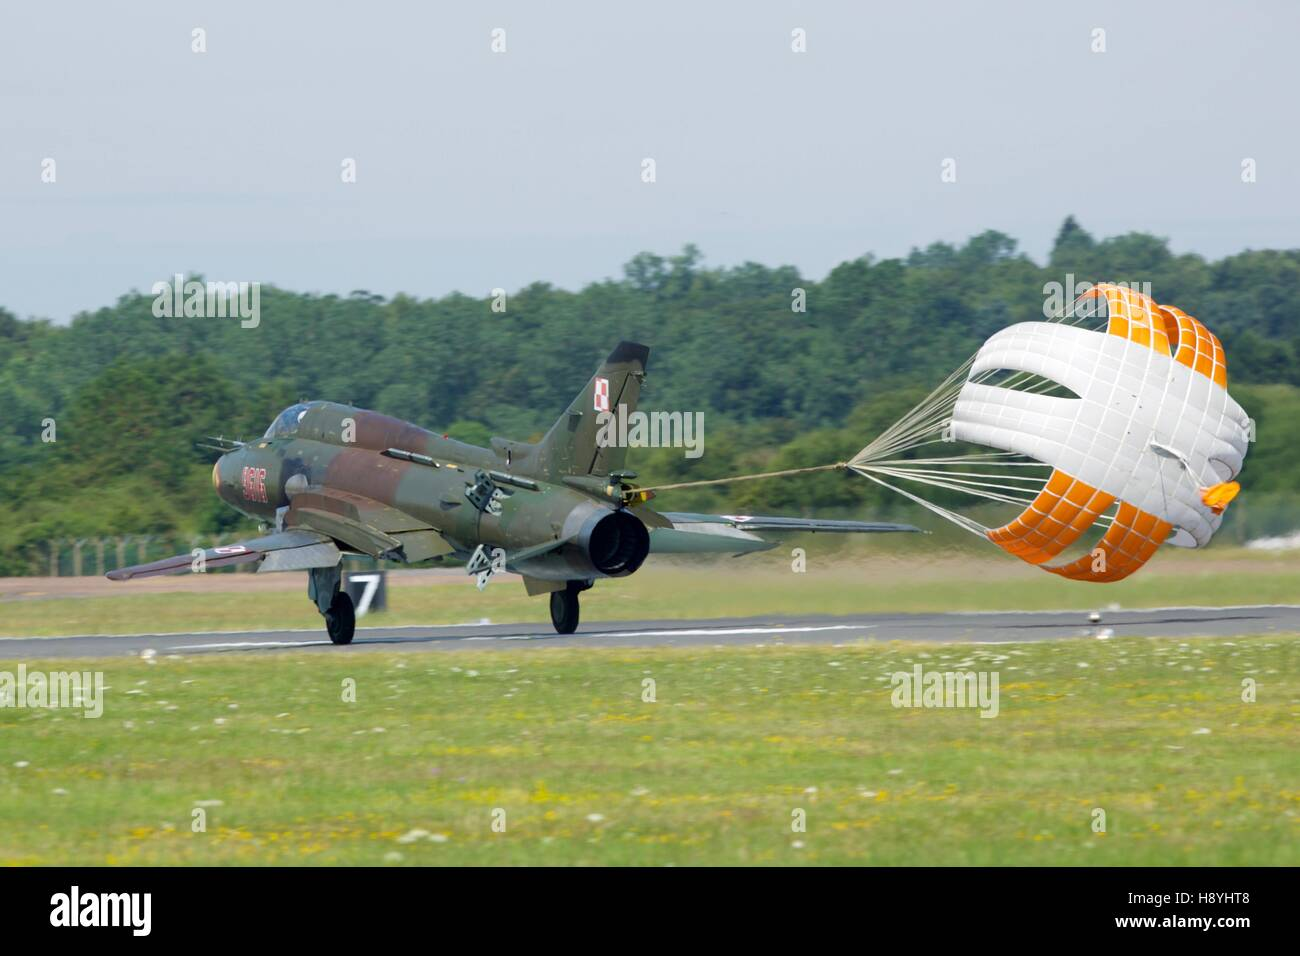 Polish Air Force Sukhoi SU-22 - Stock Image